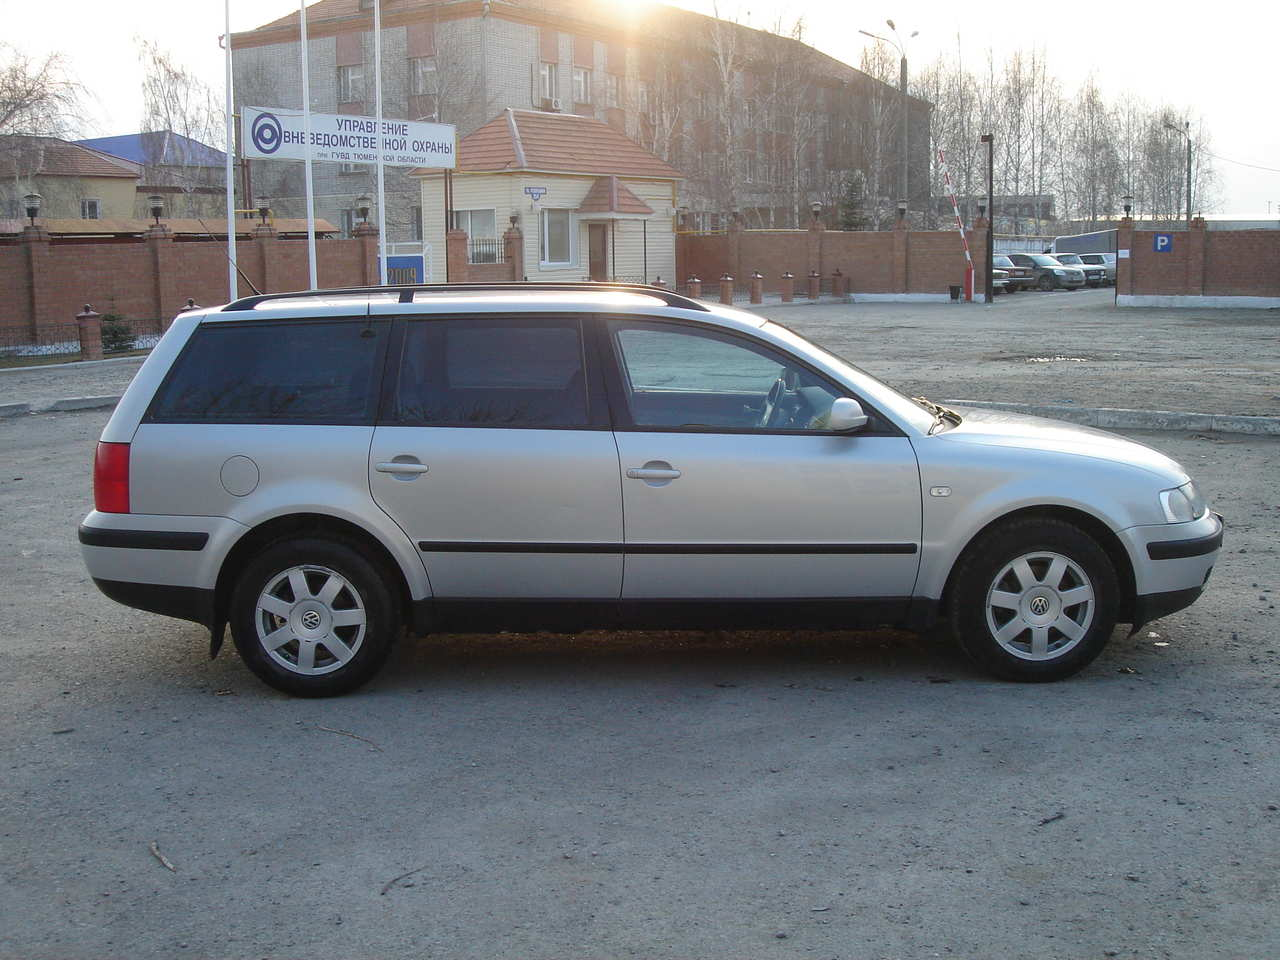 used 2000 volkswagen passat photos 1600cc gasoline ff manual for sale. Black Bedroom Furniture Sets. Home Design Ideas